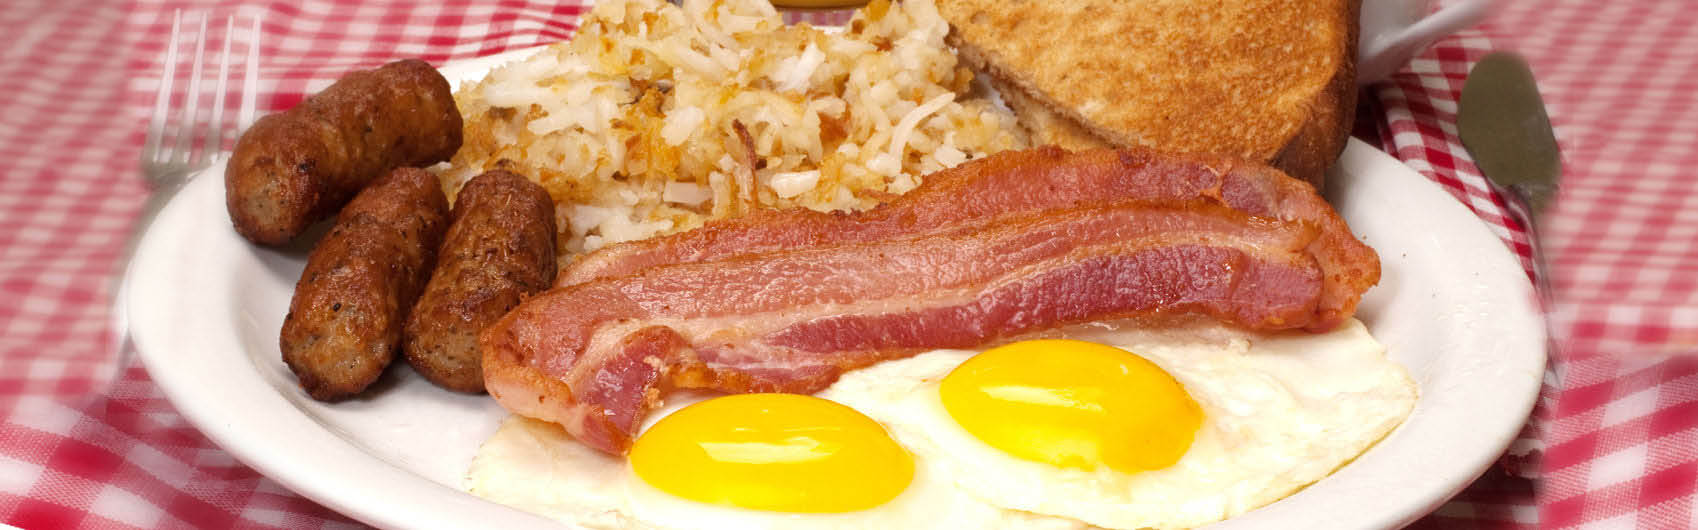 breakfast all day brunch ldr char pit restaurant coupons coupon deals menu rochester ny lake ave